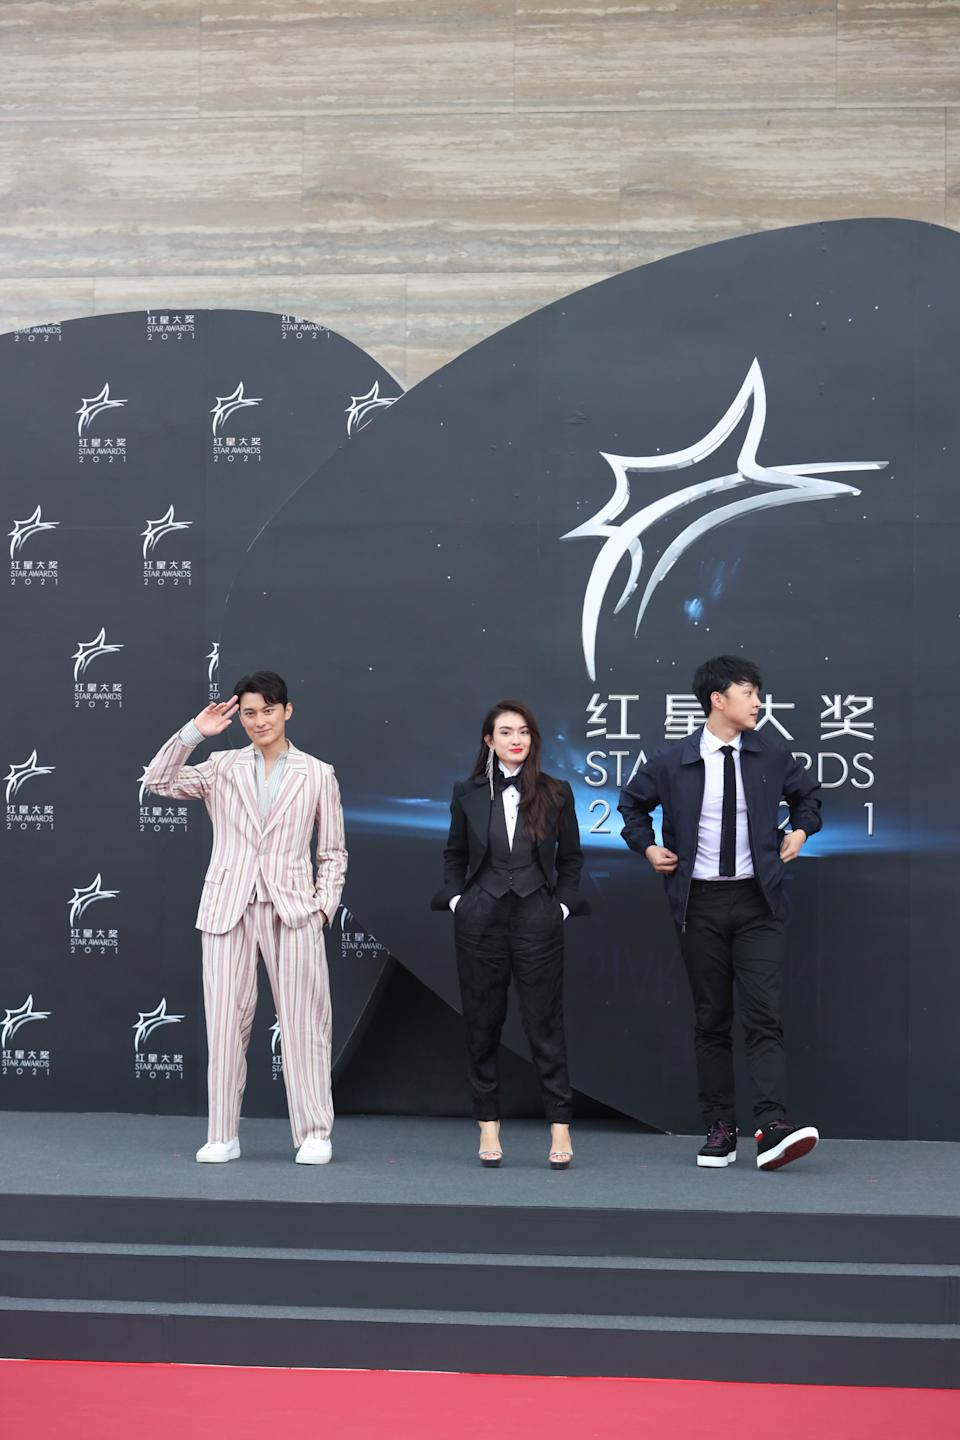 Edwin Goh, Hong Ling and Jeffrey Xu at Star Awards held at Changi Airport on 18 April 2021. (Photo: Mediacorp)